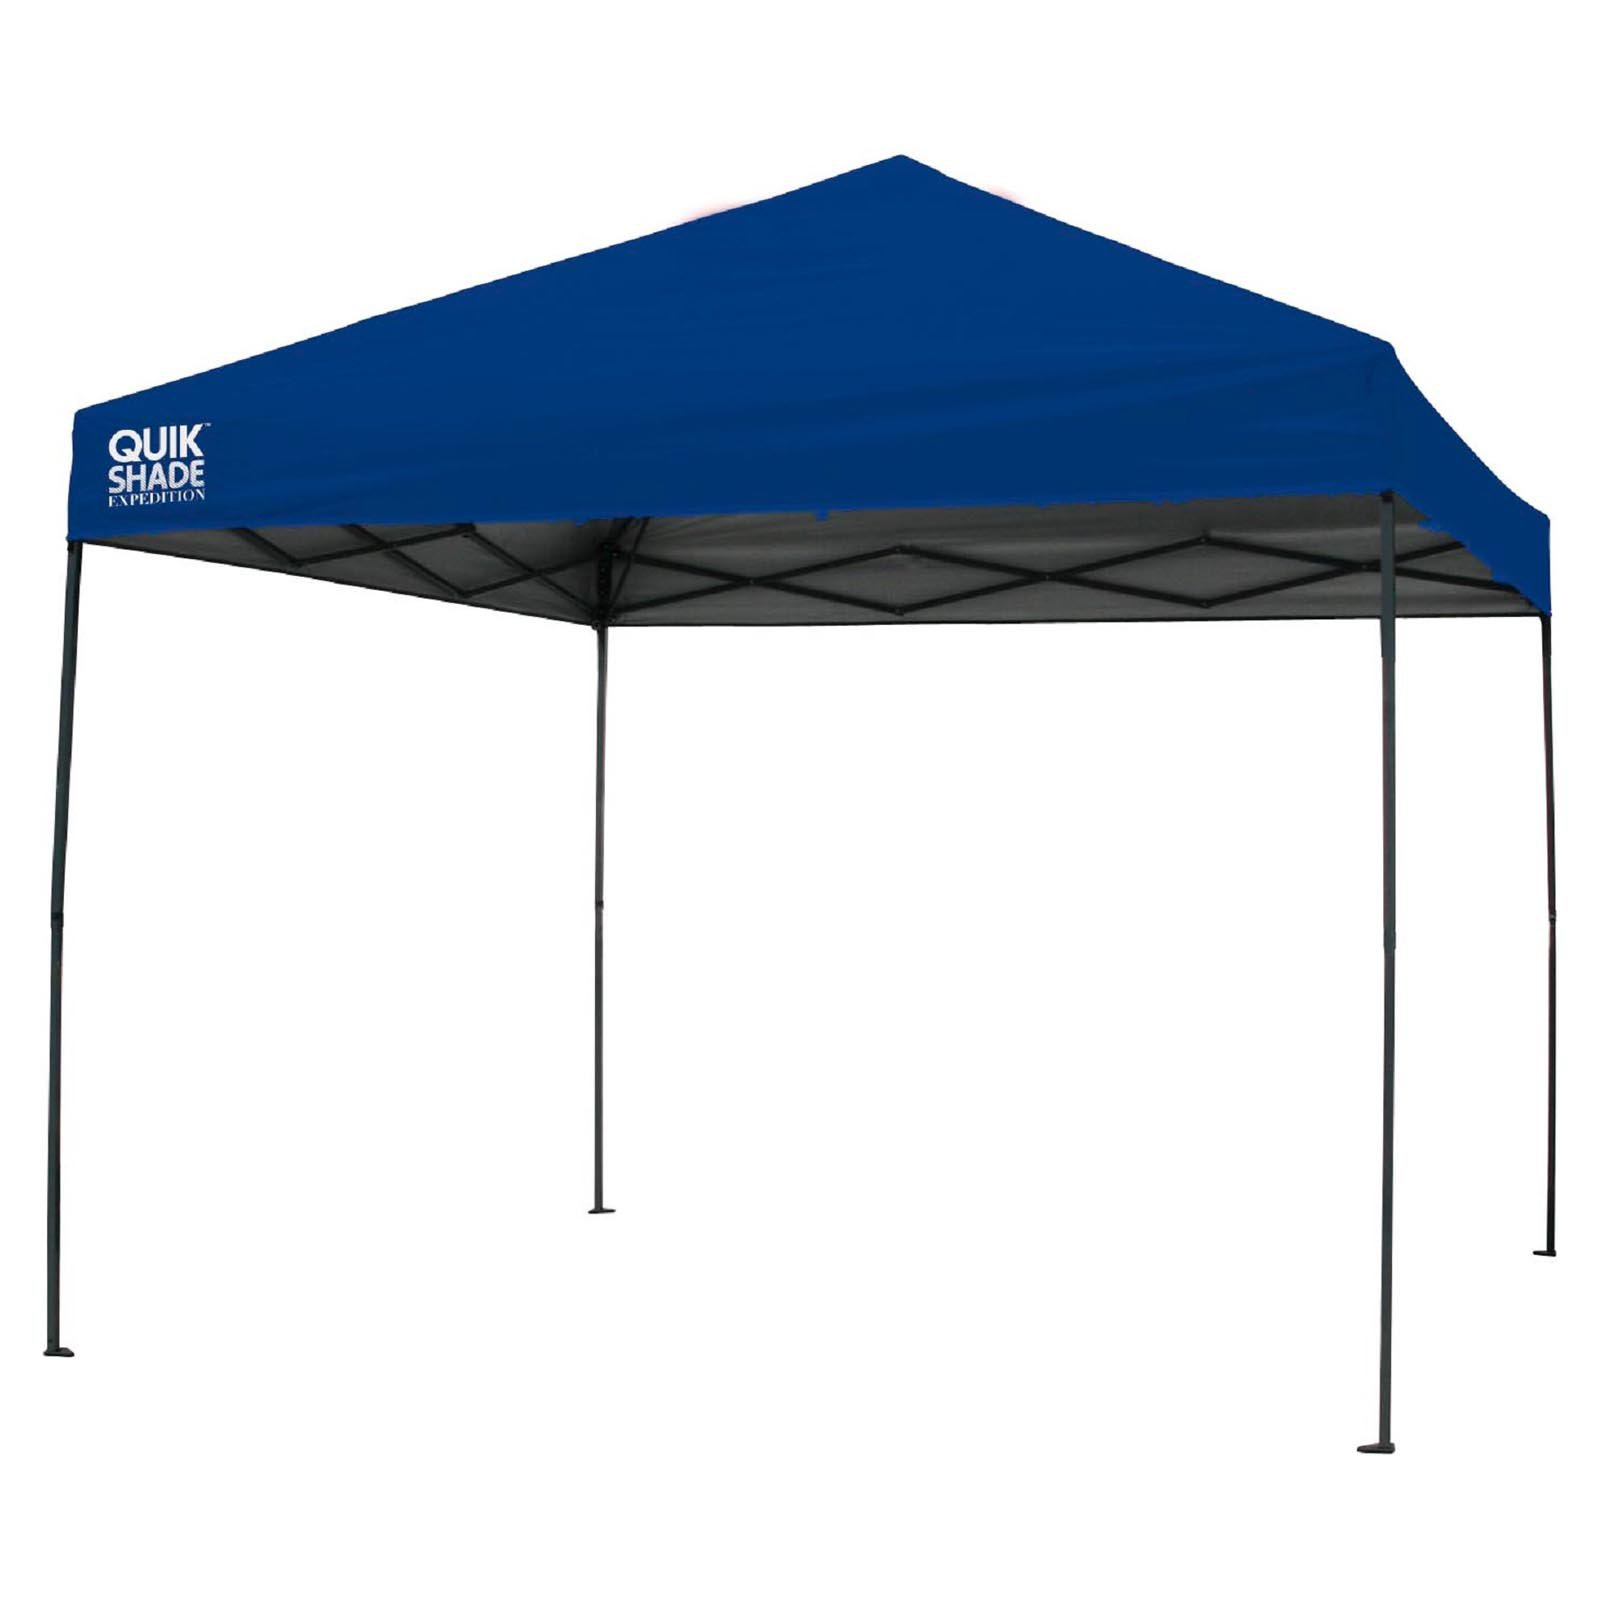 Quik Shade Expedition 10'x10' Straight Leg Instant Canopy...